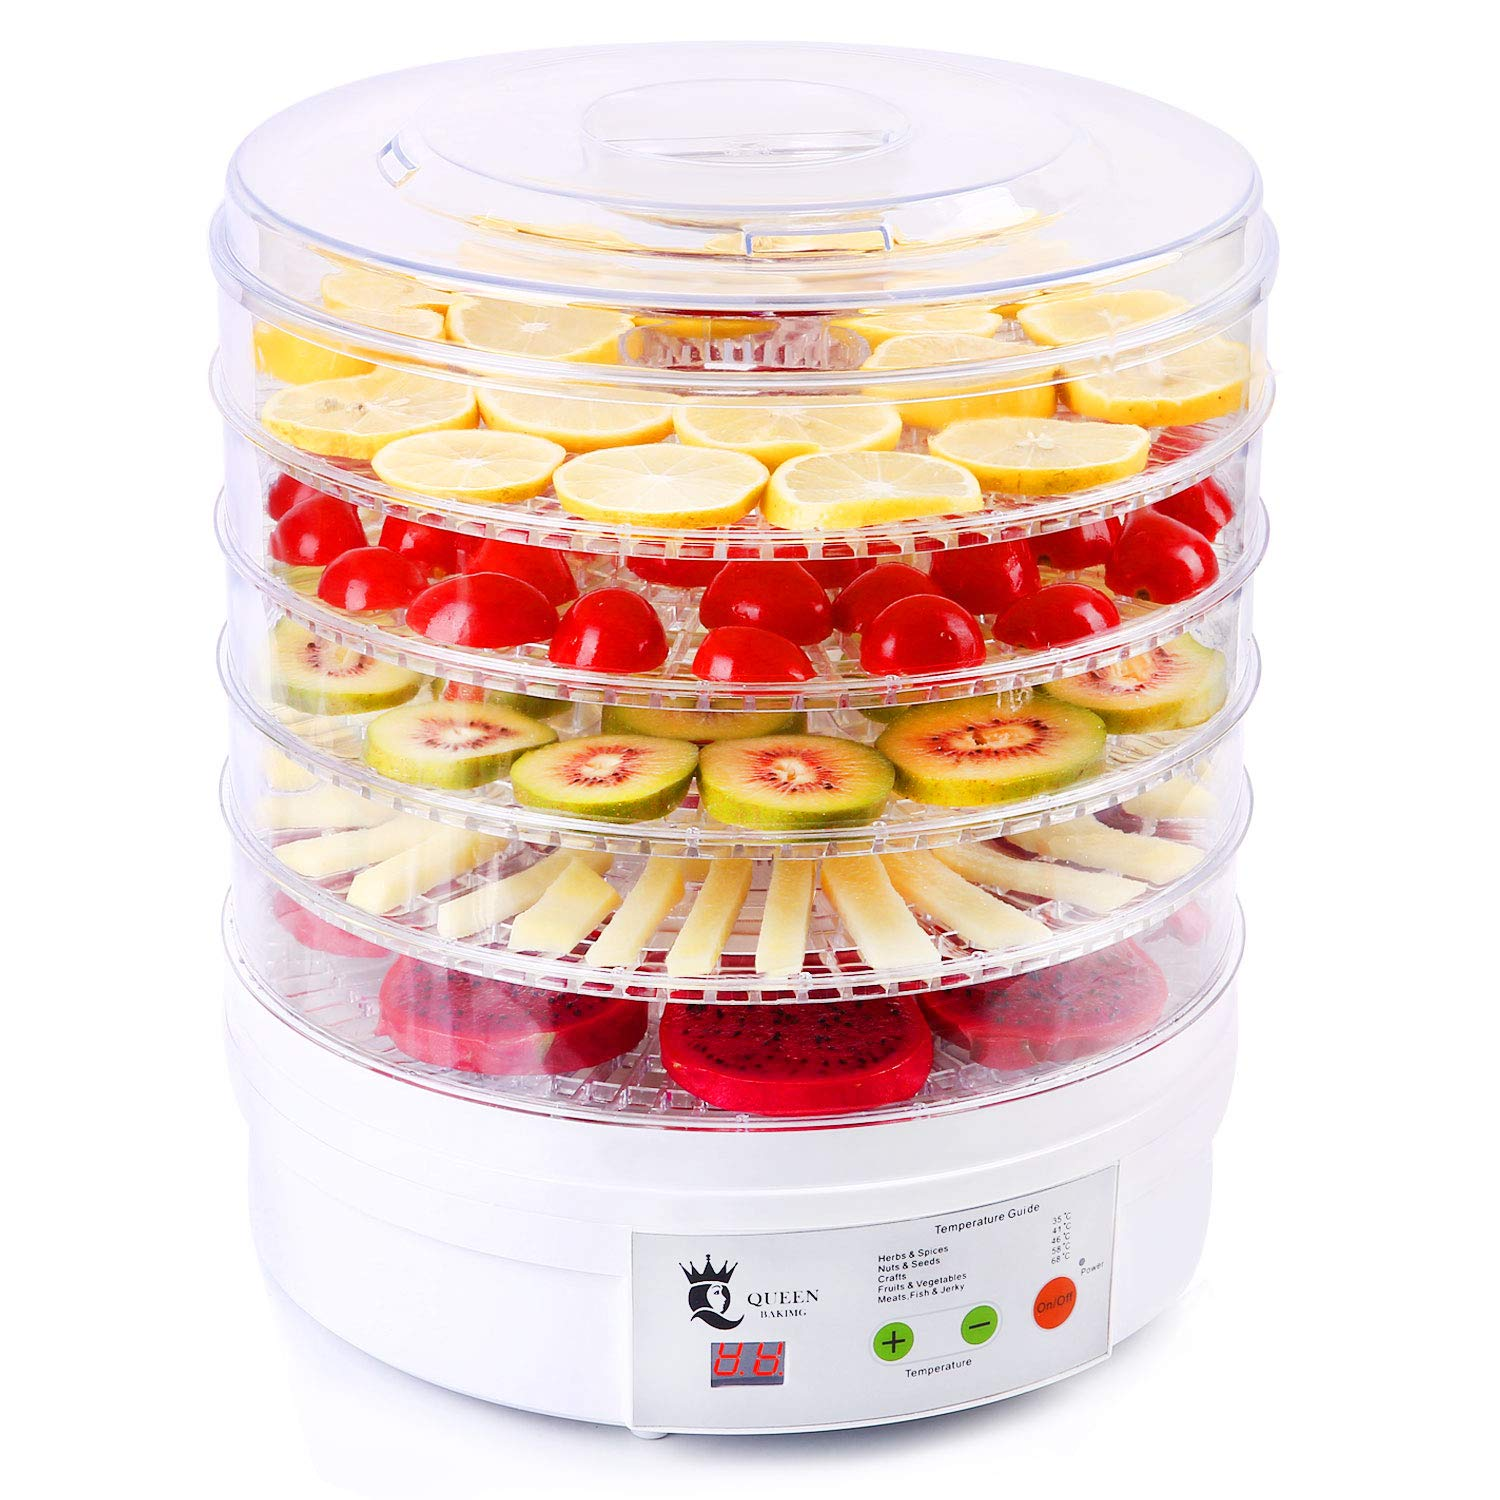 Newest Food Dehydrator, Professional Home Full Touch Digital Dehydrator With LED Temperature Timing Display, 5 Layers of Detachable Full Transparent Round Tray Without BPA, Suitable for Meat or Beef Jerky, Fruits and Vegetables, Etc.